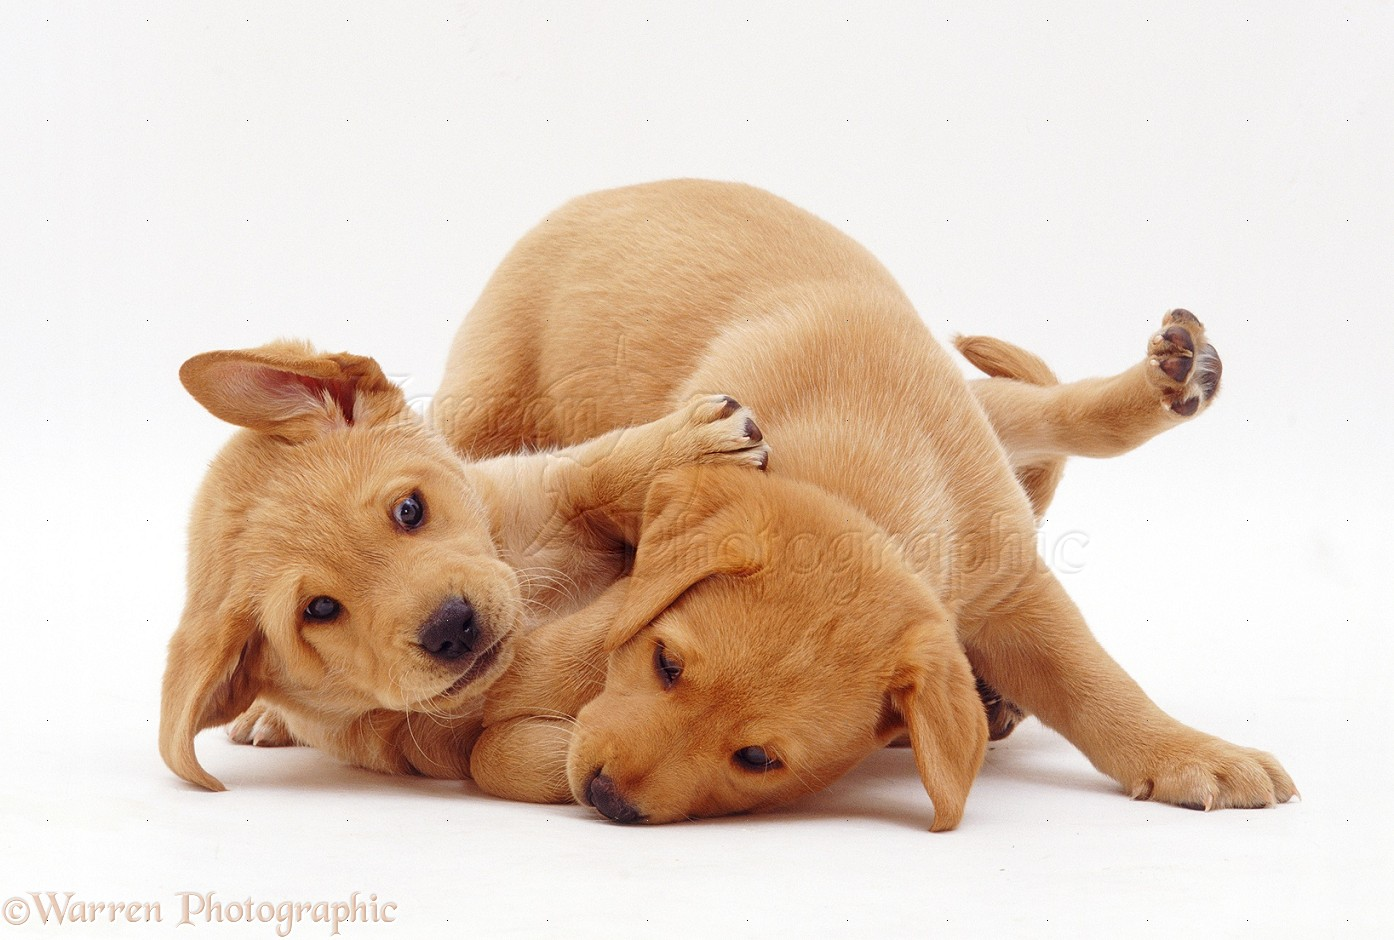 ... Two Yellow Labrador Retriever pups, 6 weeks old, play-fighting